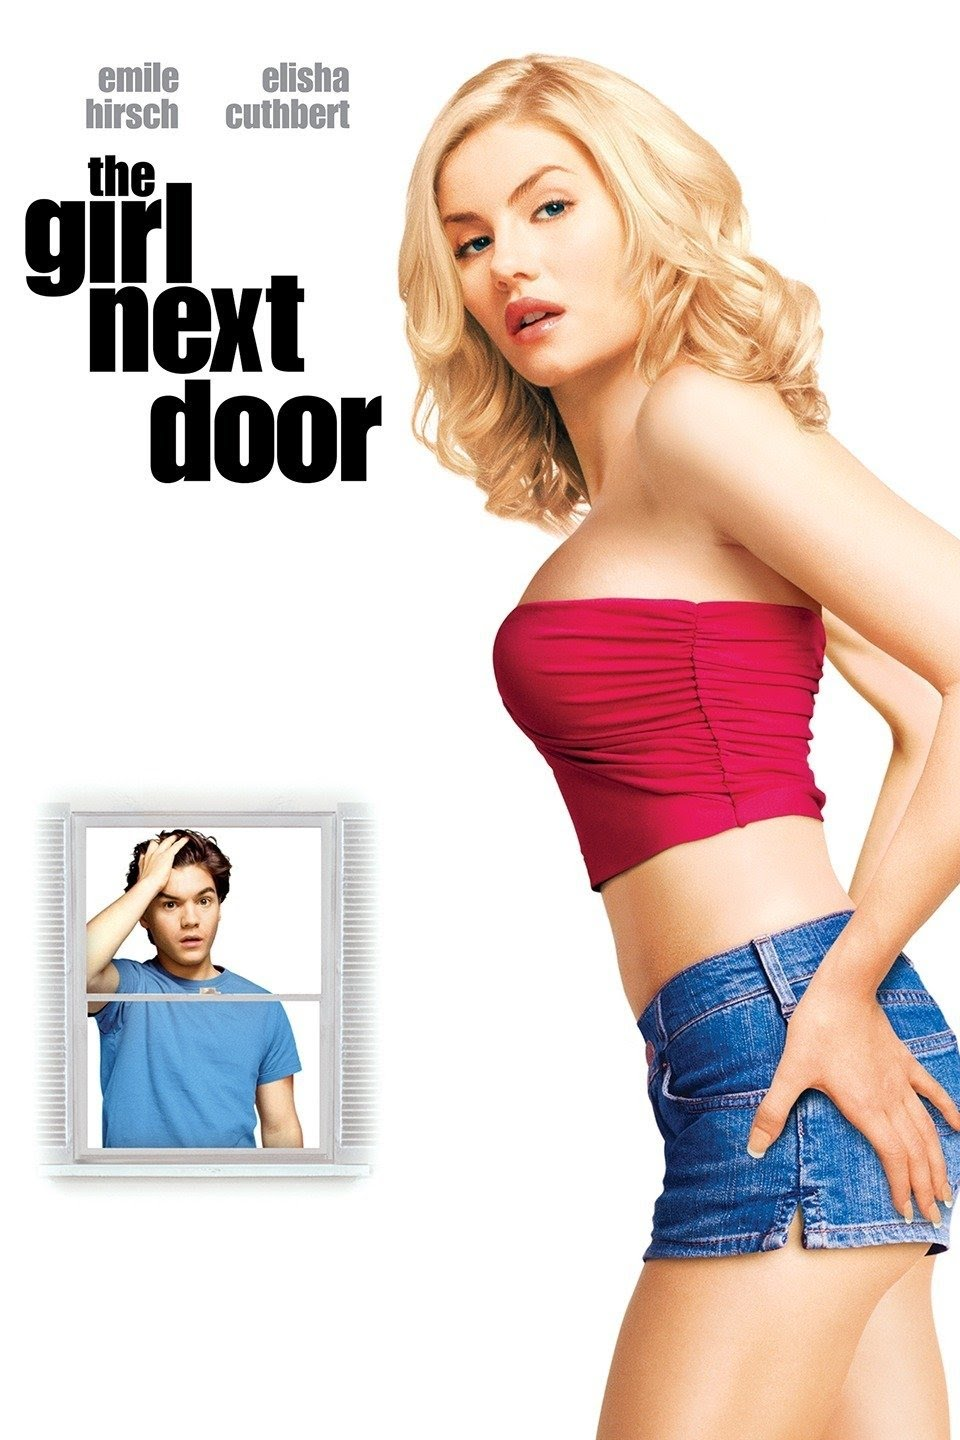 the girl next door 2004 movie available on which platform